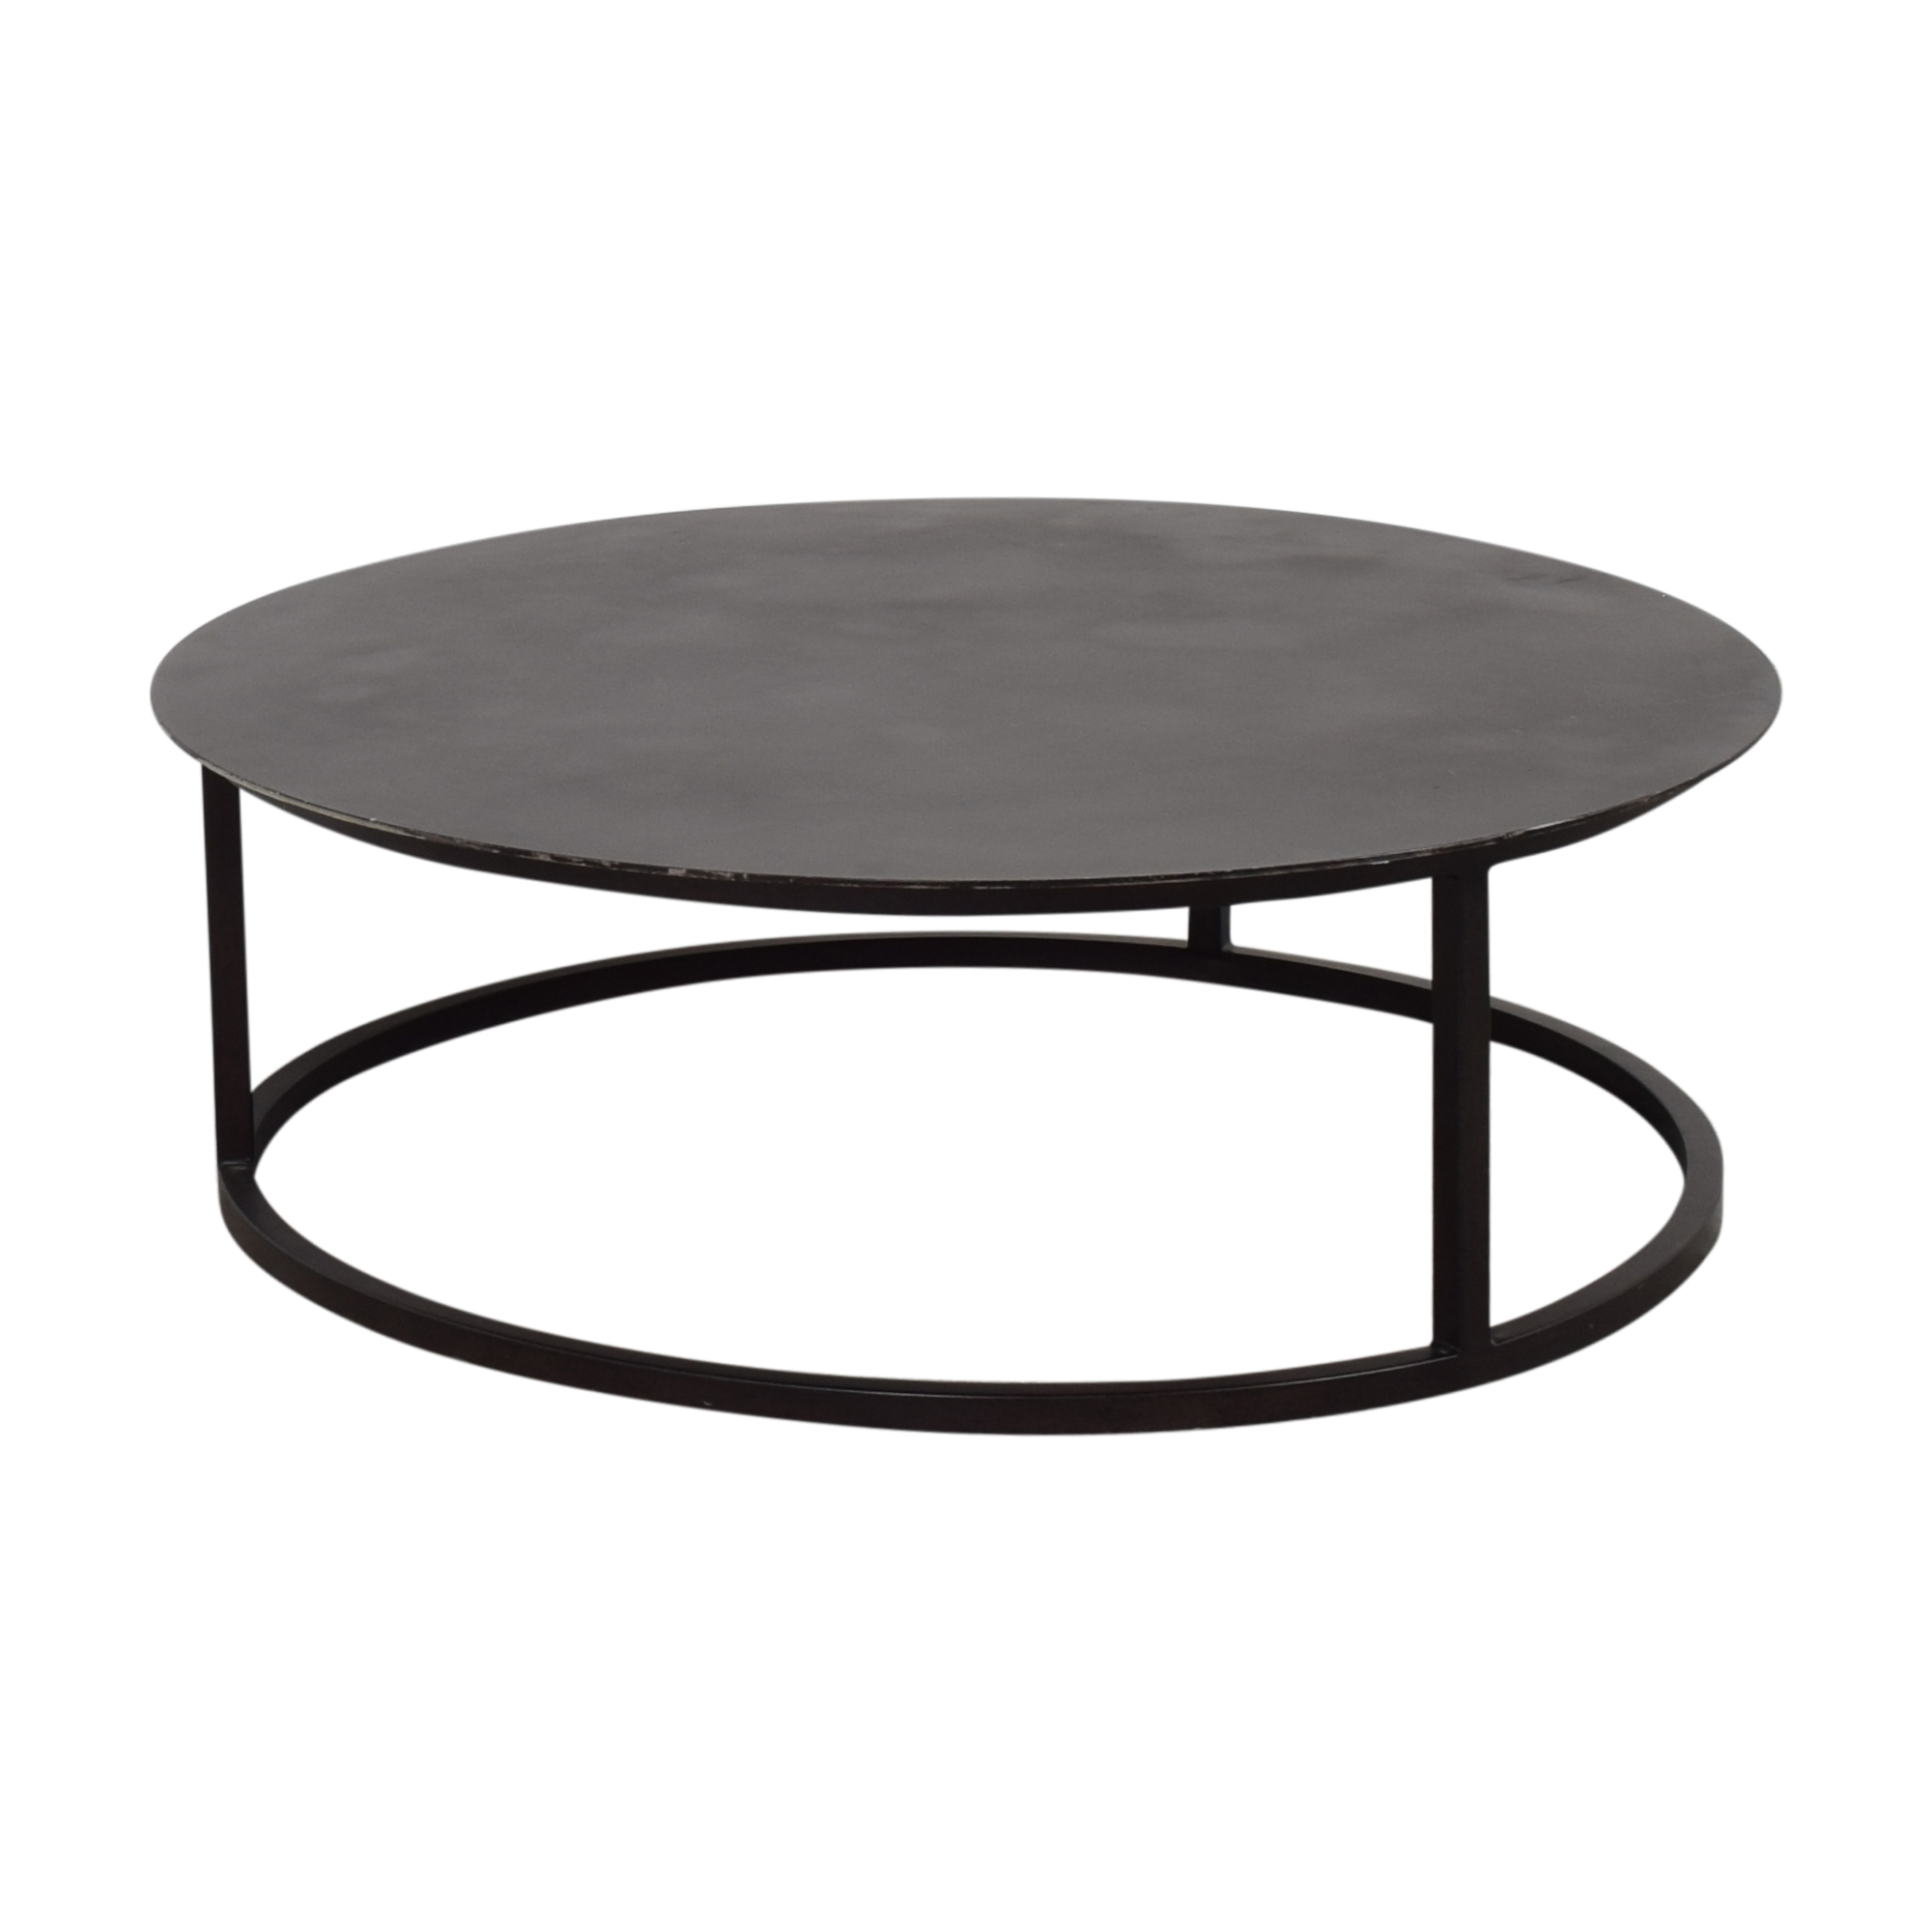 Restoration Hardware Mercer Round Coffee Table / Coffee Tables